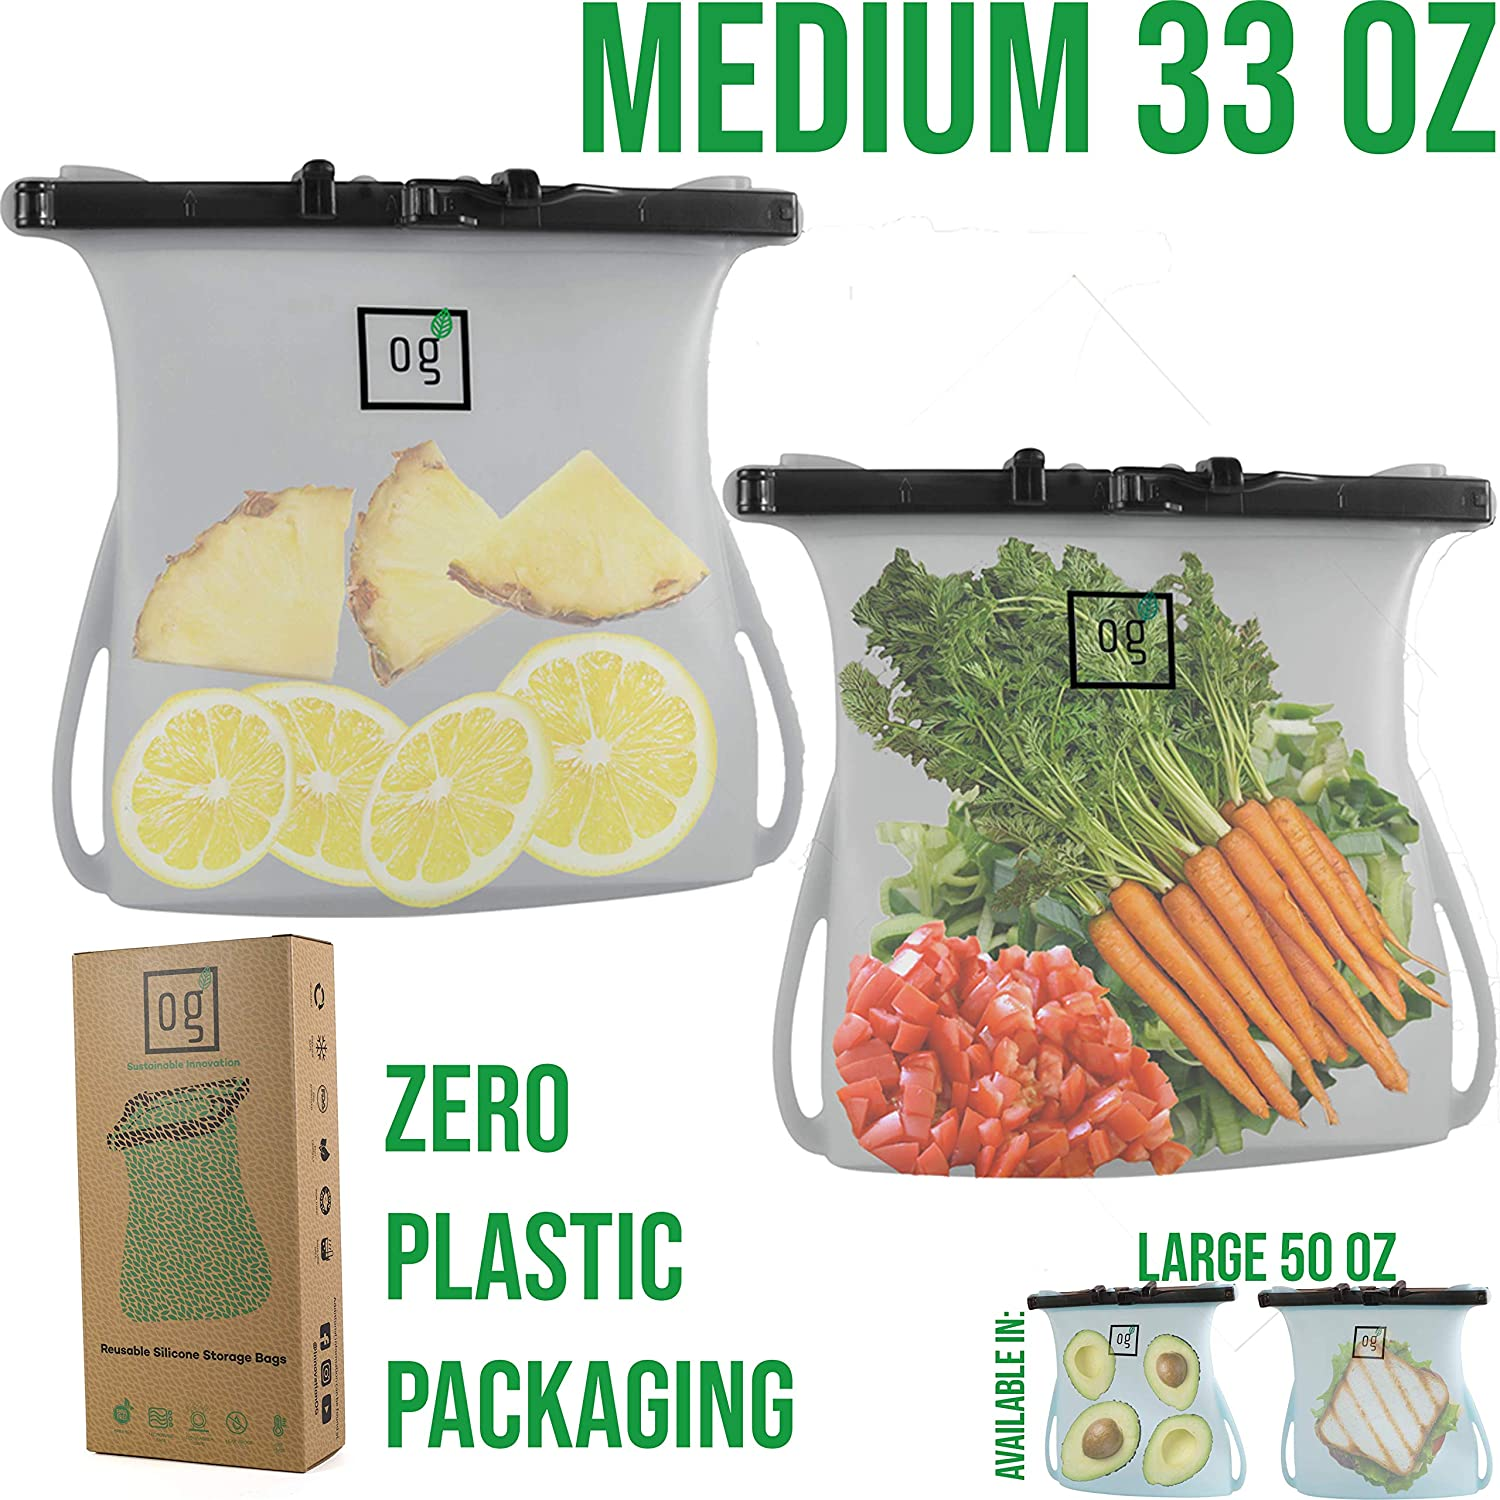 Reusable Silicone Food Storage Bags by Green OG | Perfect for Freezer Storage, Snack Storage | 100% LEAKPROOF Seal + Dishwasher Safe | Premium set of 2 Medium, 33oz, Clear Bags